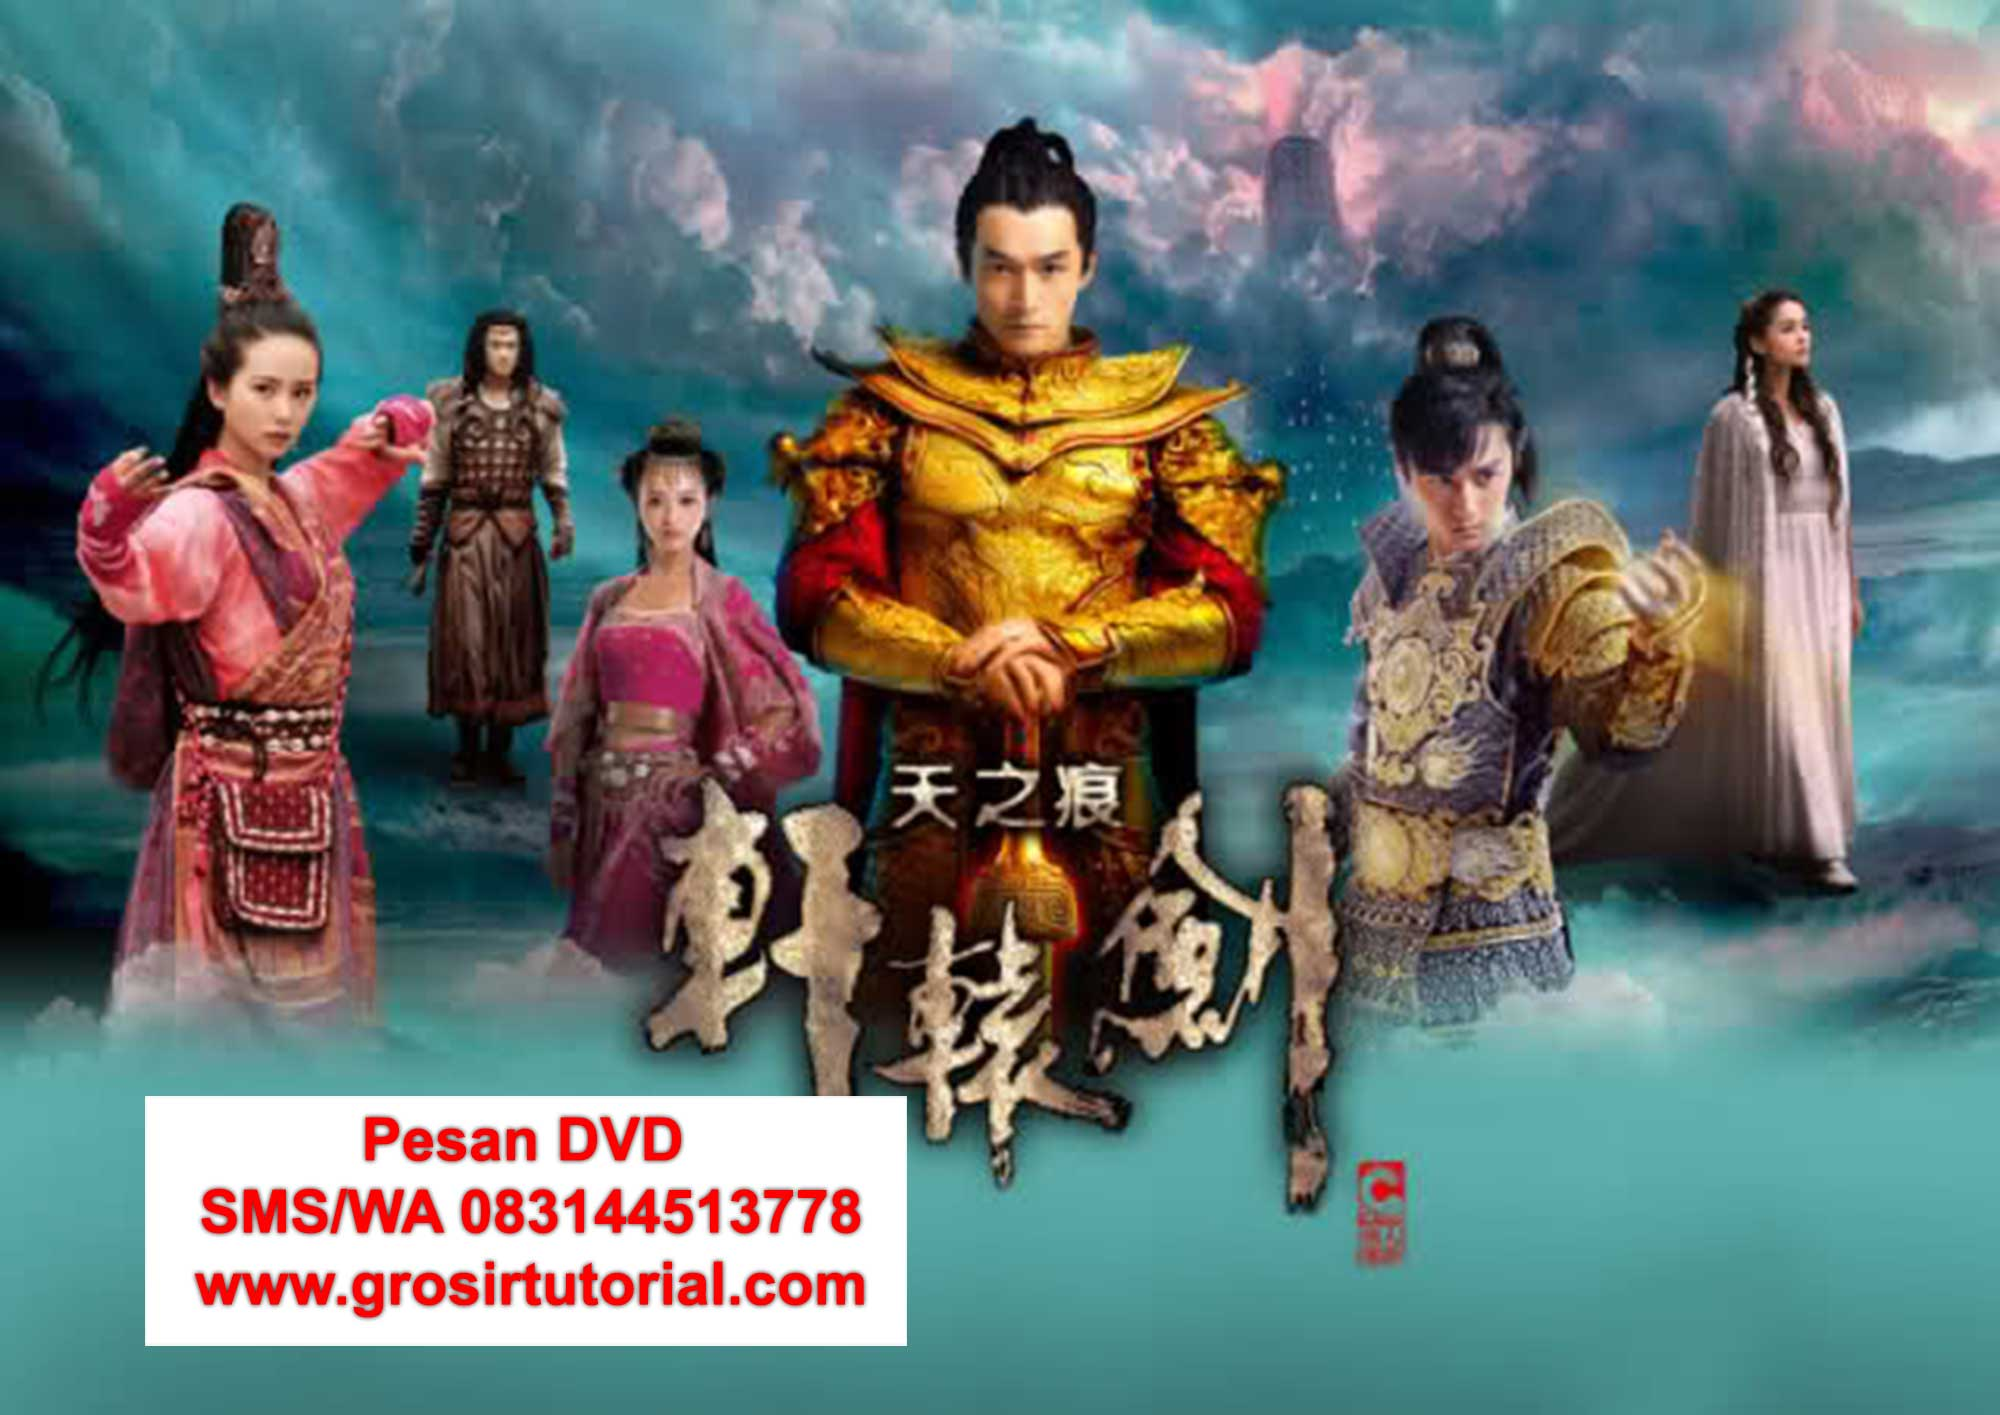 DVD-mandarin-Xuanyuan-Sword-3--The-Scar-in-The-Sky